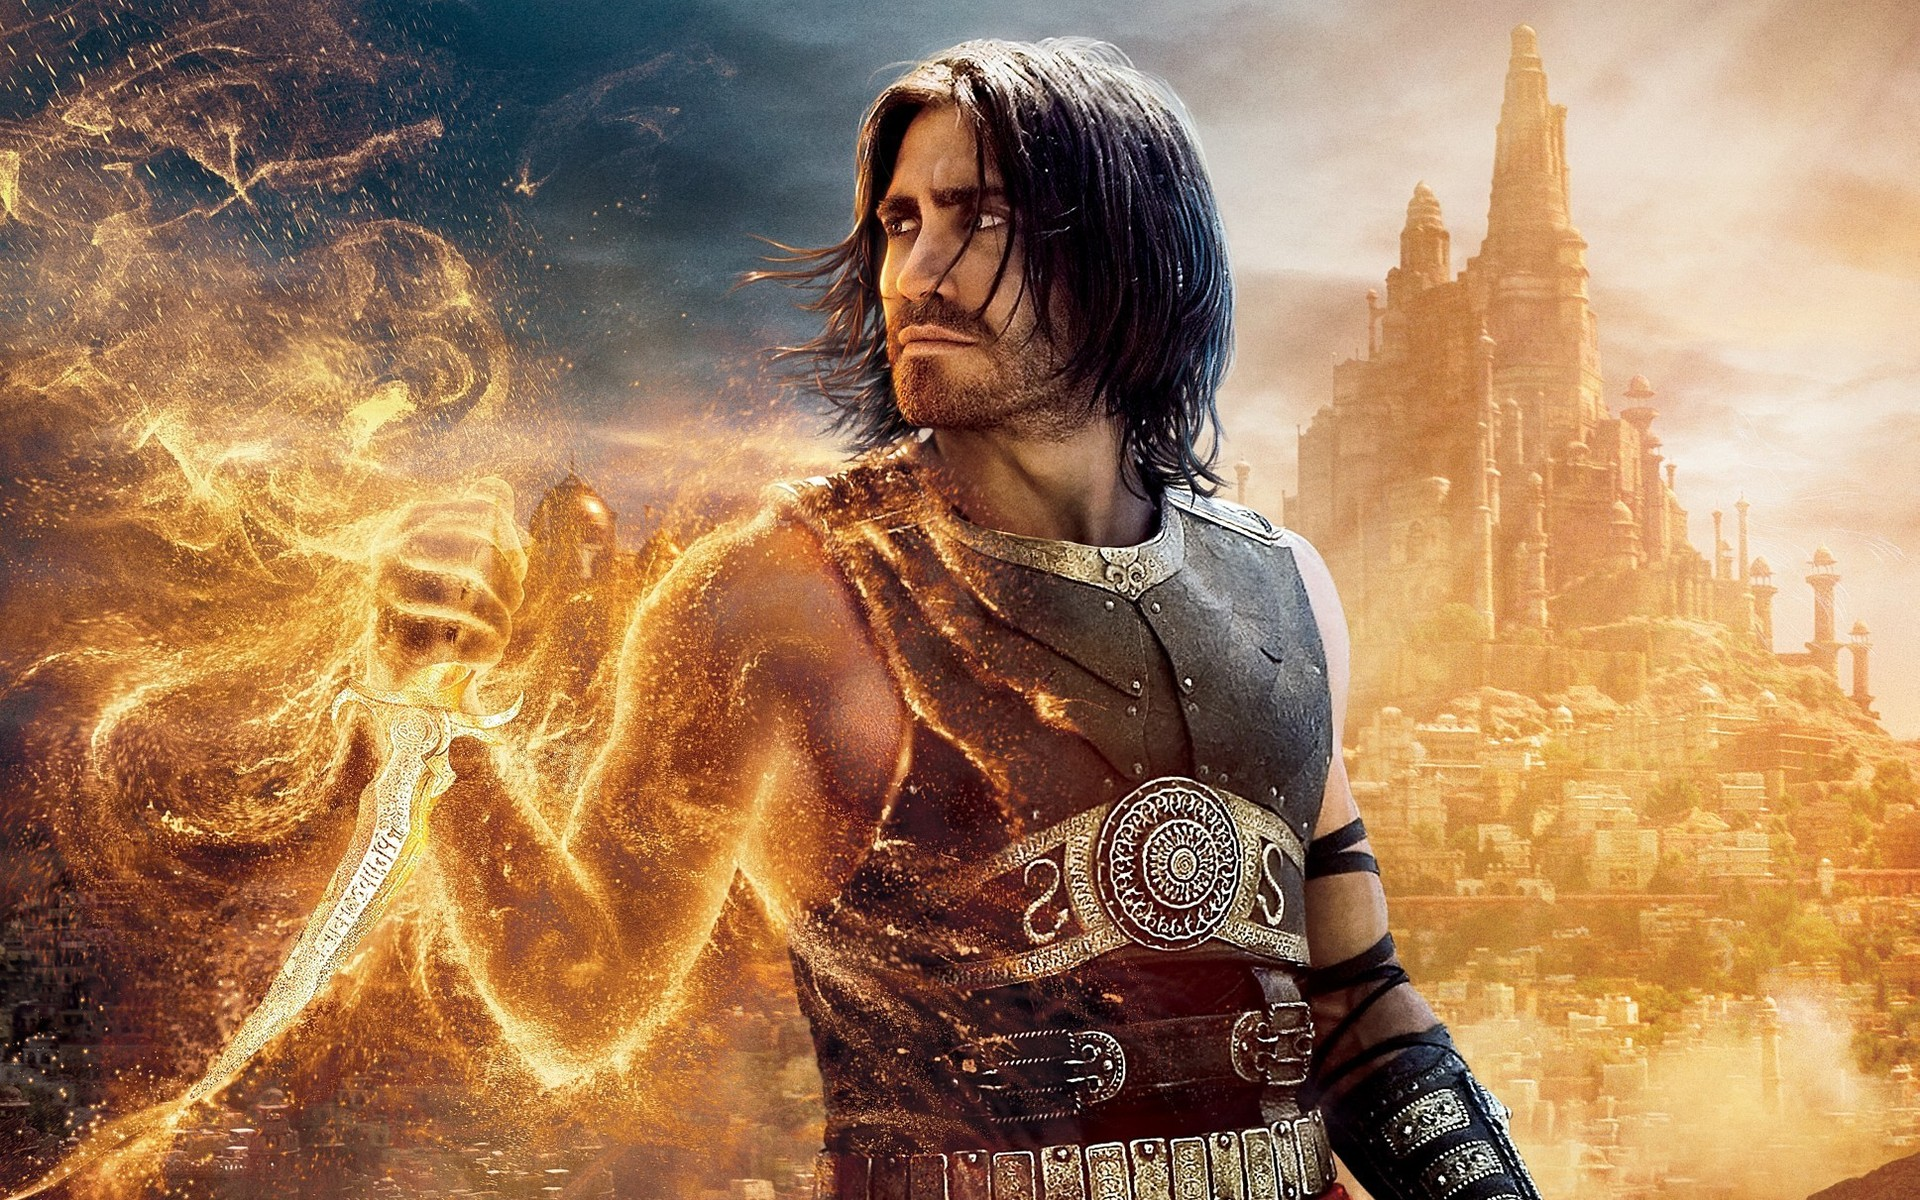 Prince of Persia (2010) Wallpapers, Movie Wallpaper |Prince Of Persia Movie Wallpapers